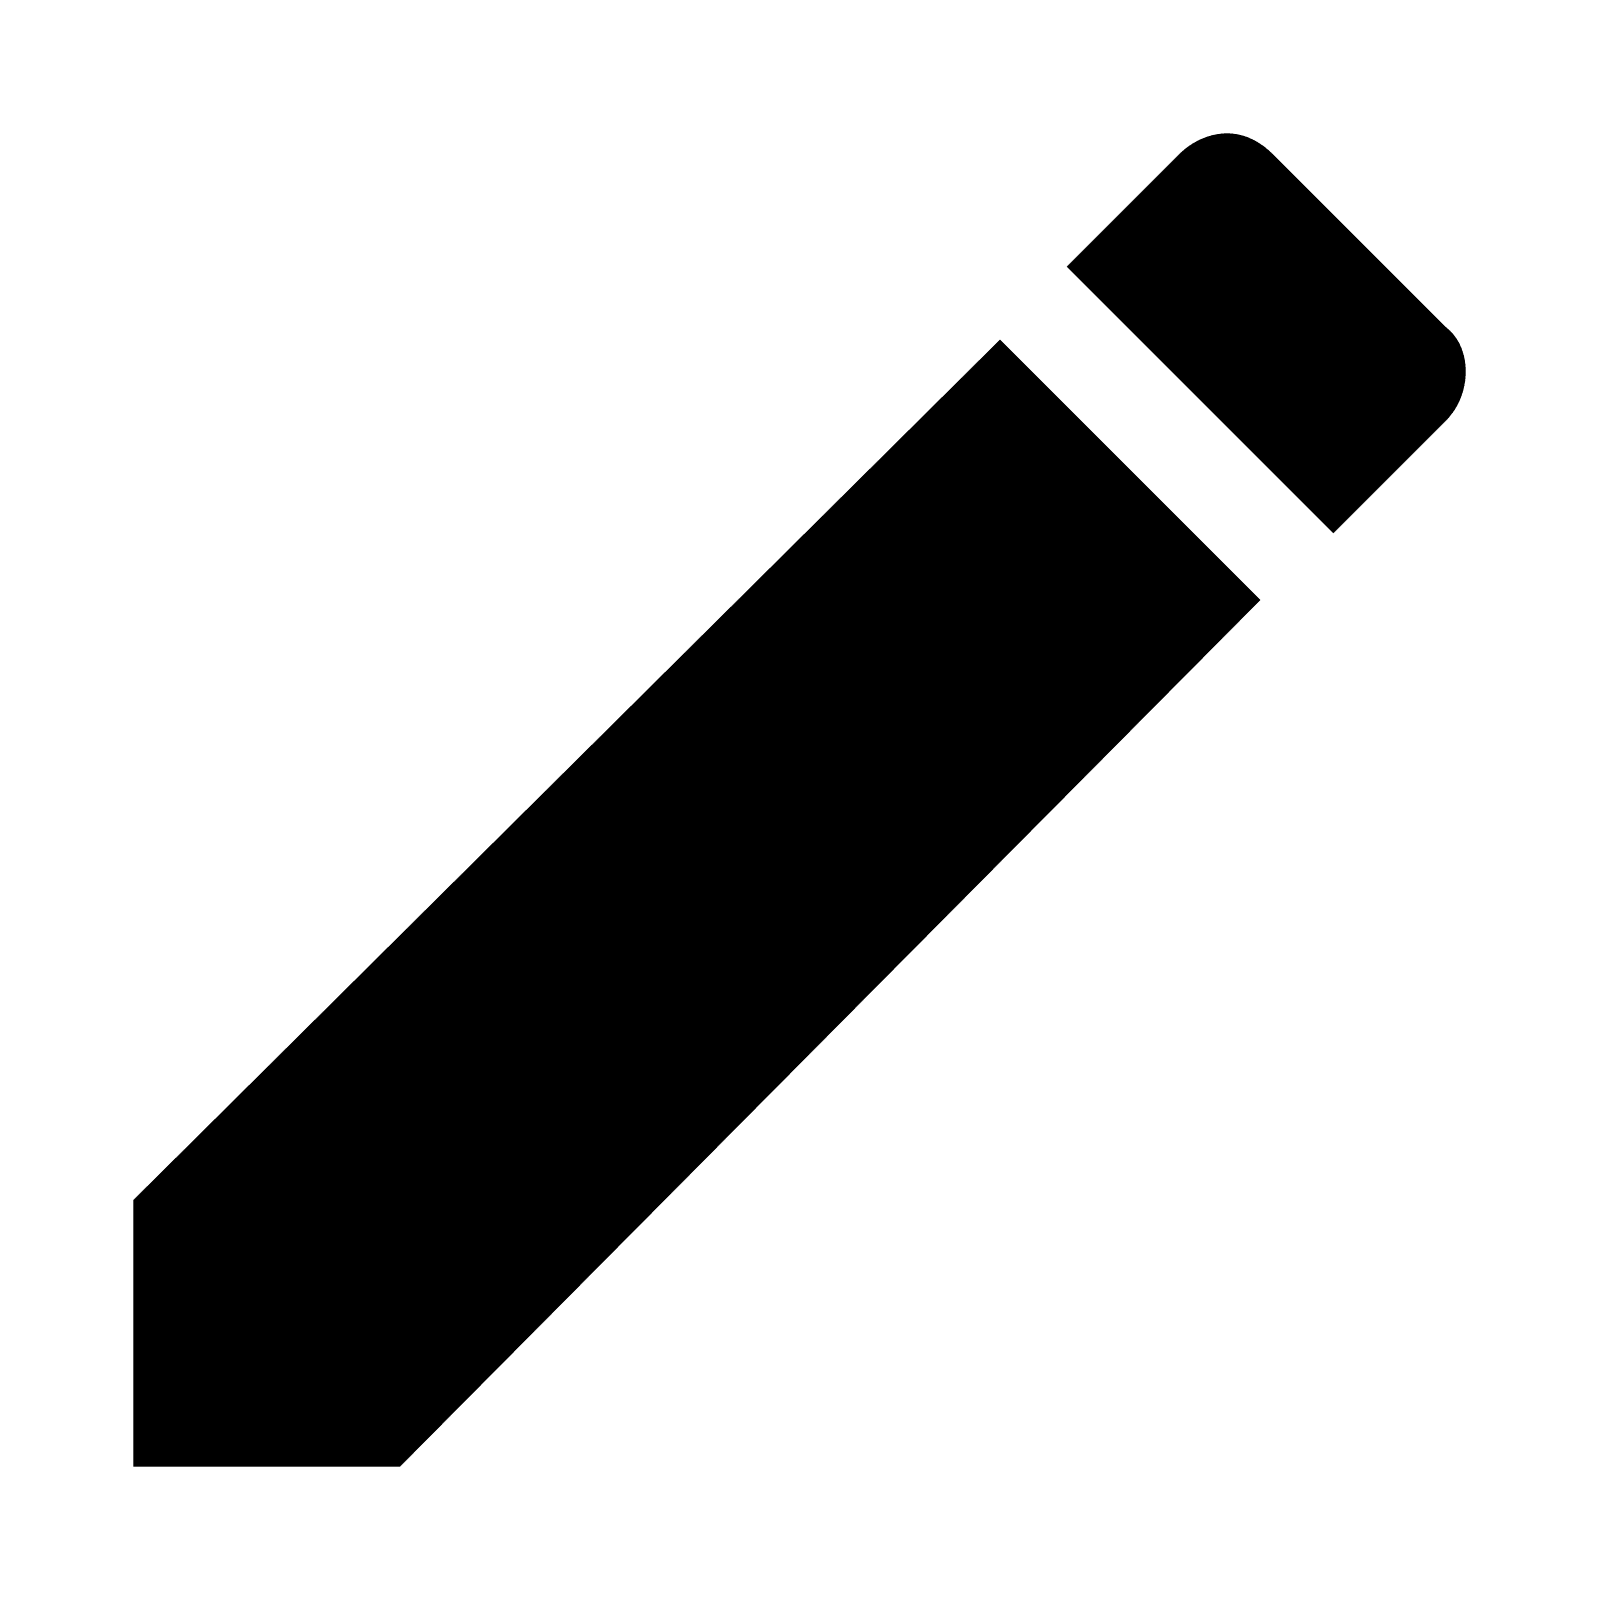 The icon is a simplified depiction of the tip of a common pencil, sharpened  to. PNG 50 px - Tip Of Pencil PNG